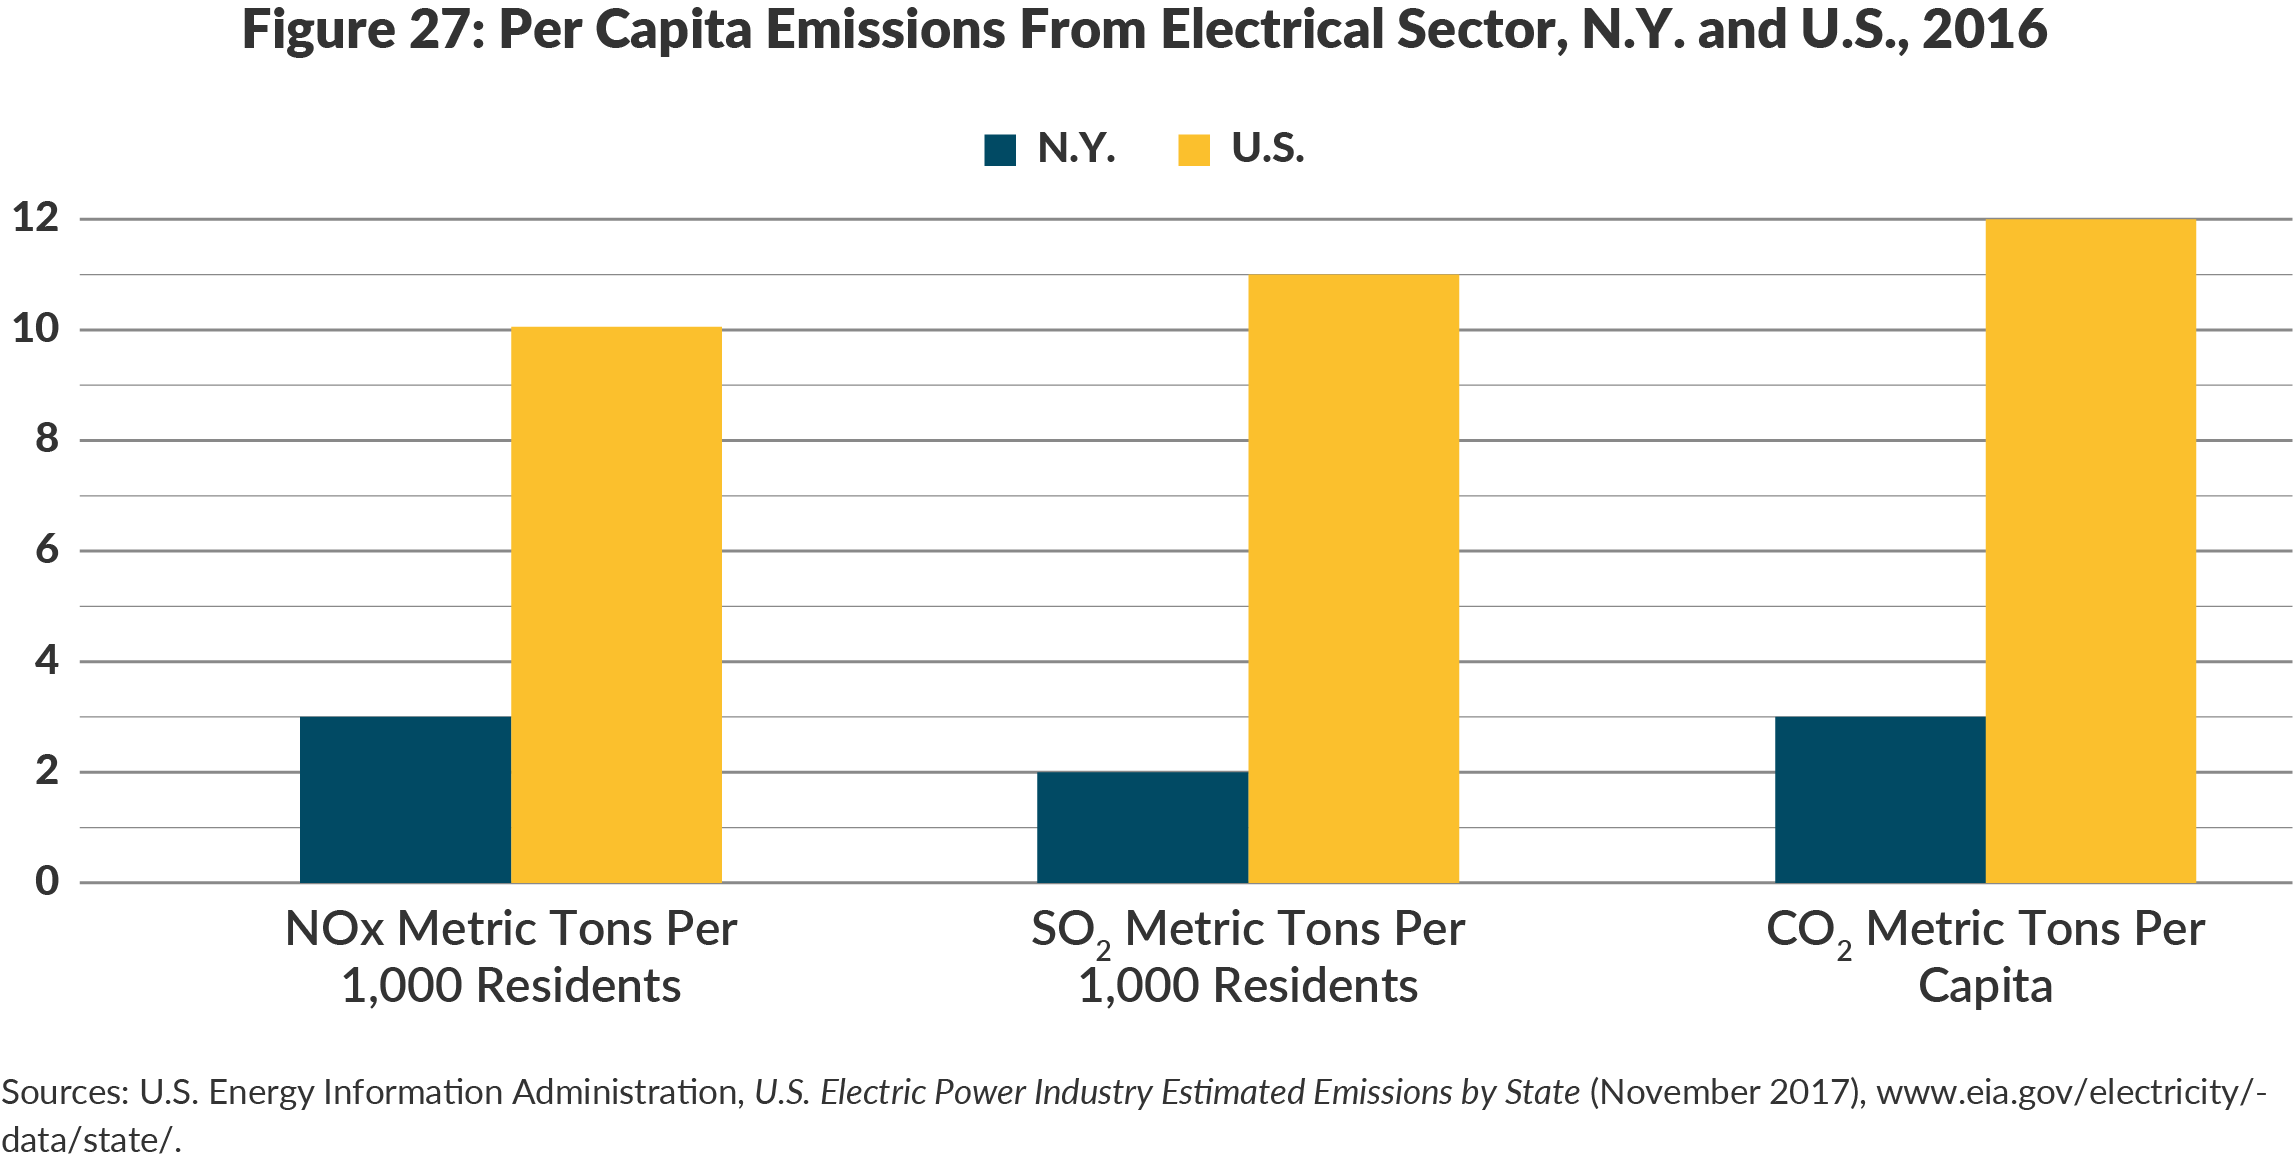 Figure 27: Per Capita Emissions From Electrical Sector, N.Y. and U.S., 2016